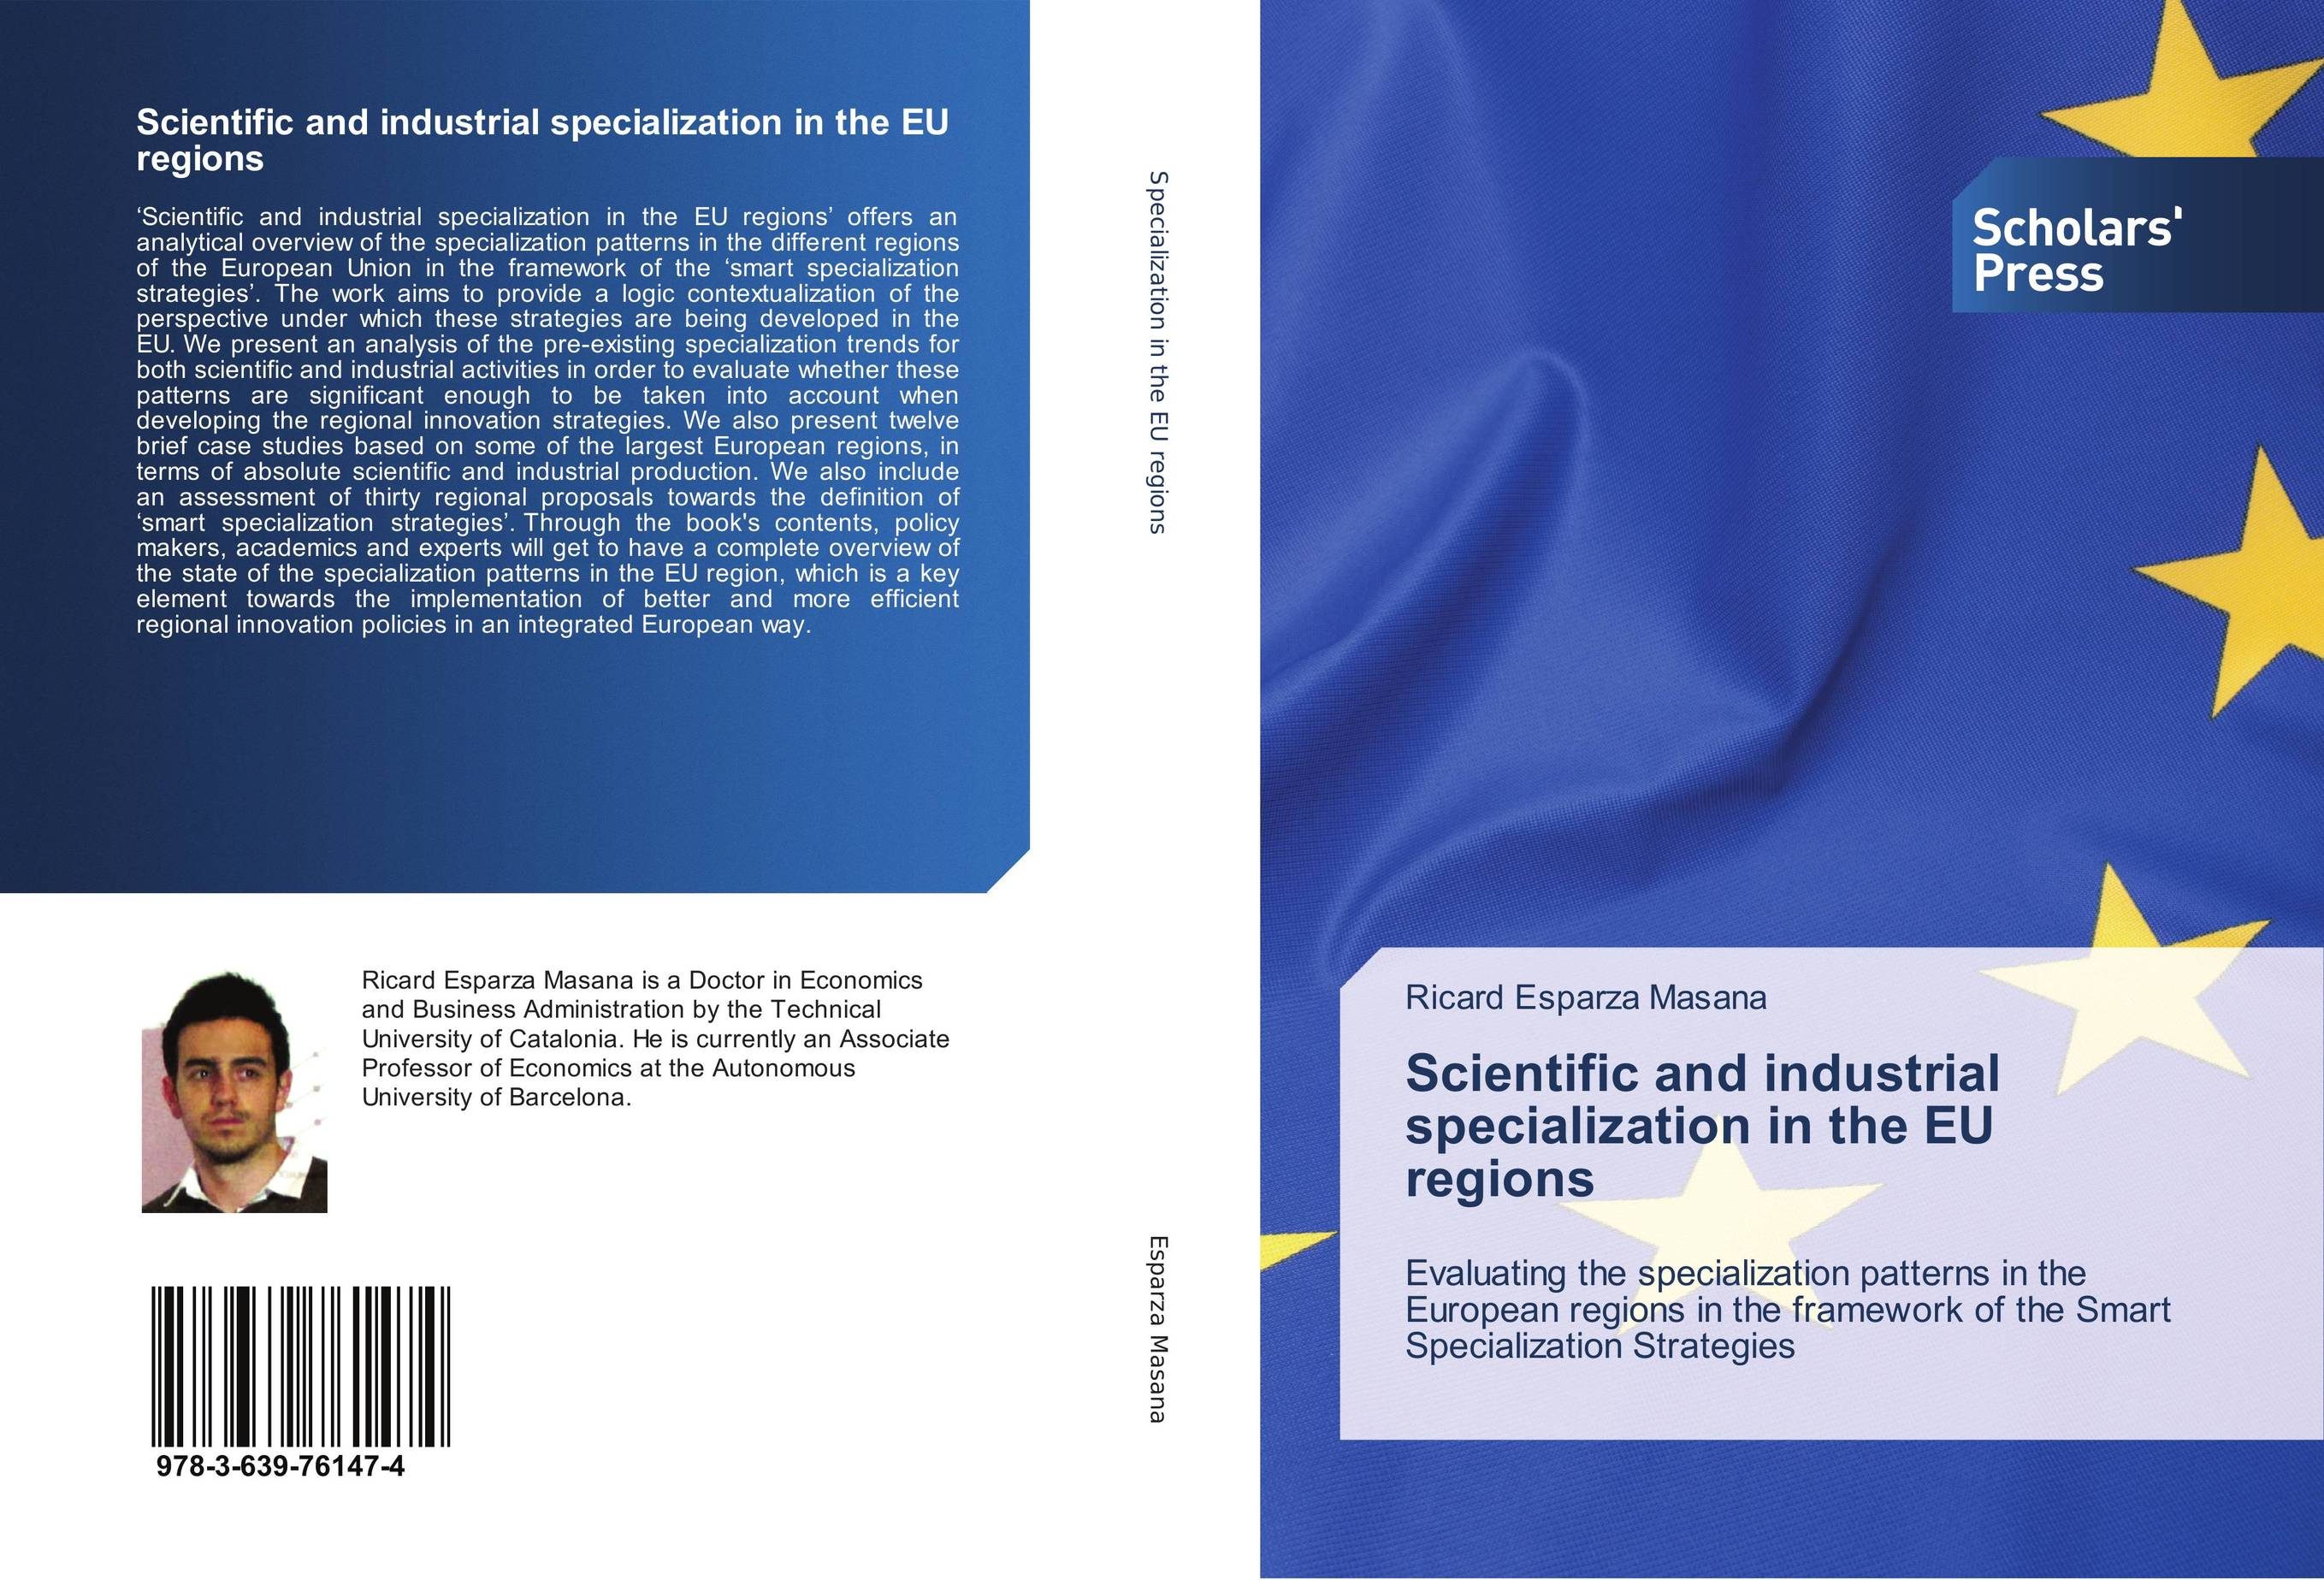 Scientific and industrial specialization in the EU regions oliver goldsmith an enquiry into the present state of polite learning in europe